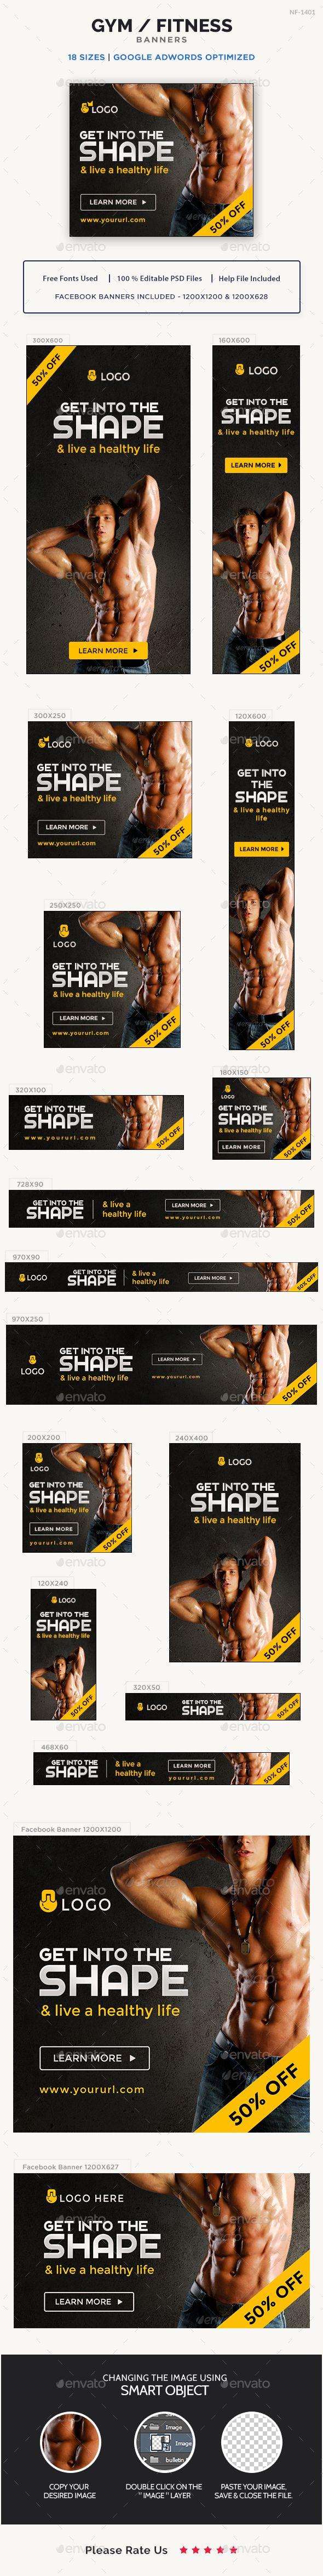 Gym and Fitness Banner Template PSD. Download here: http://graphicriver.net/item/gym-and-fitness-banner/16936077?ref=ksioks